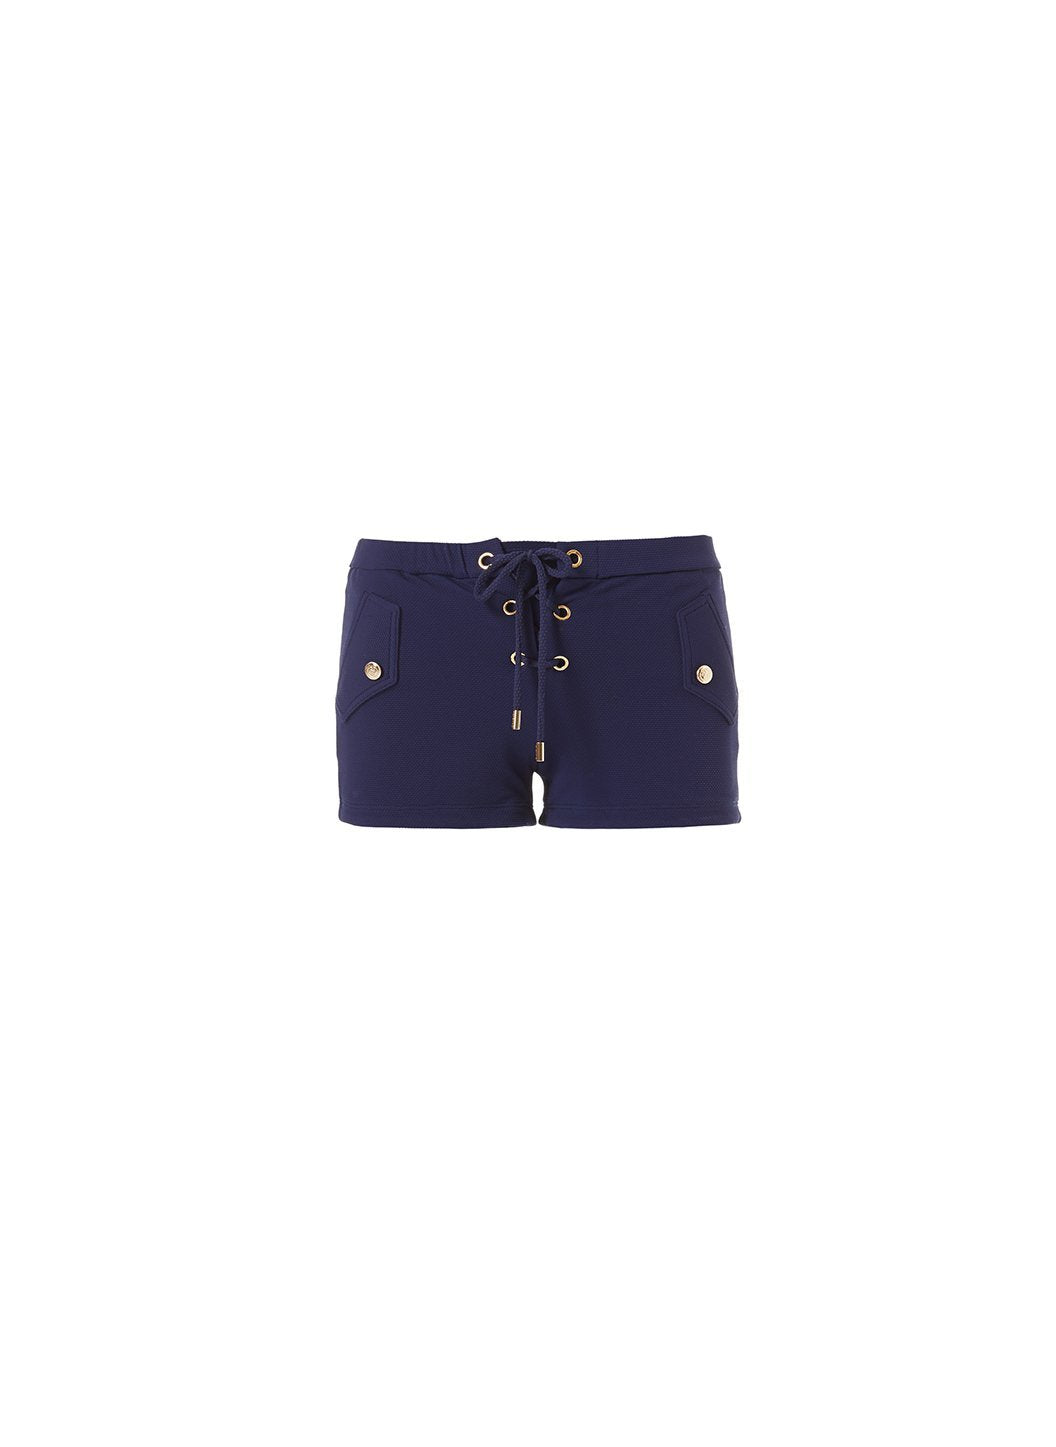 Sophia Navy Pique Lace-Up Eyelet Shorts